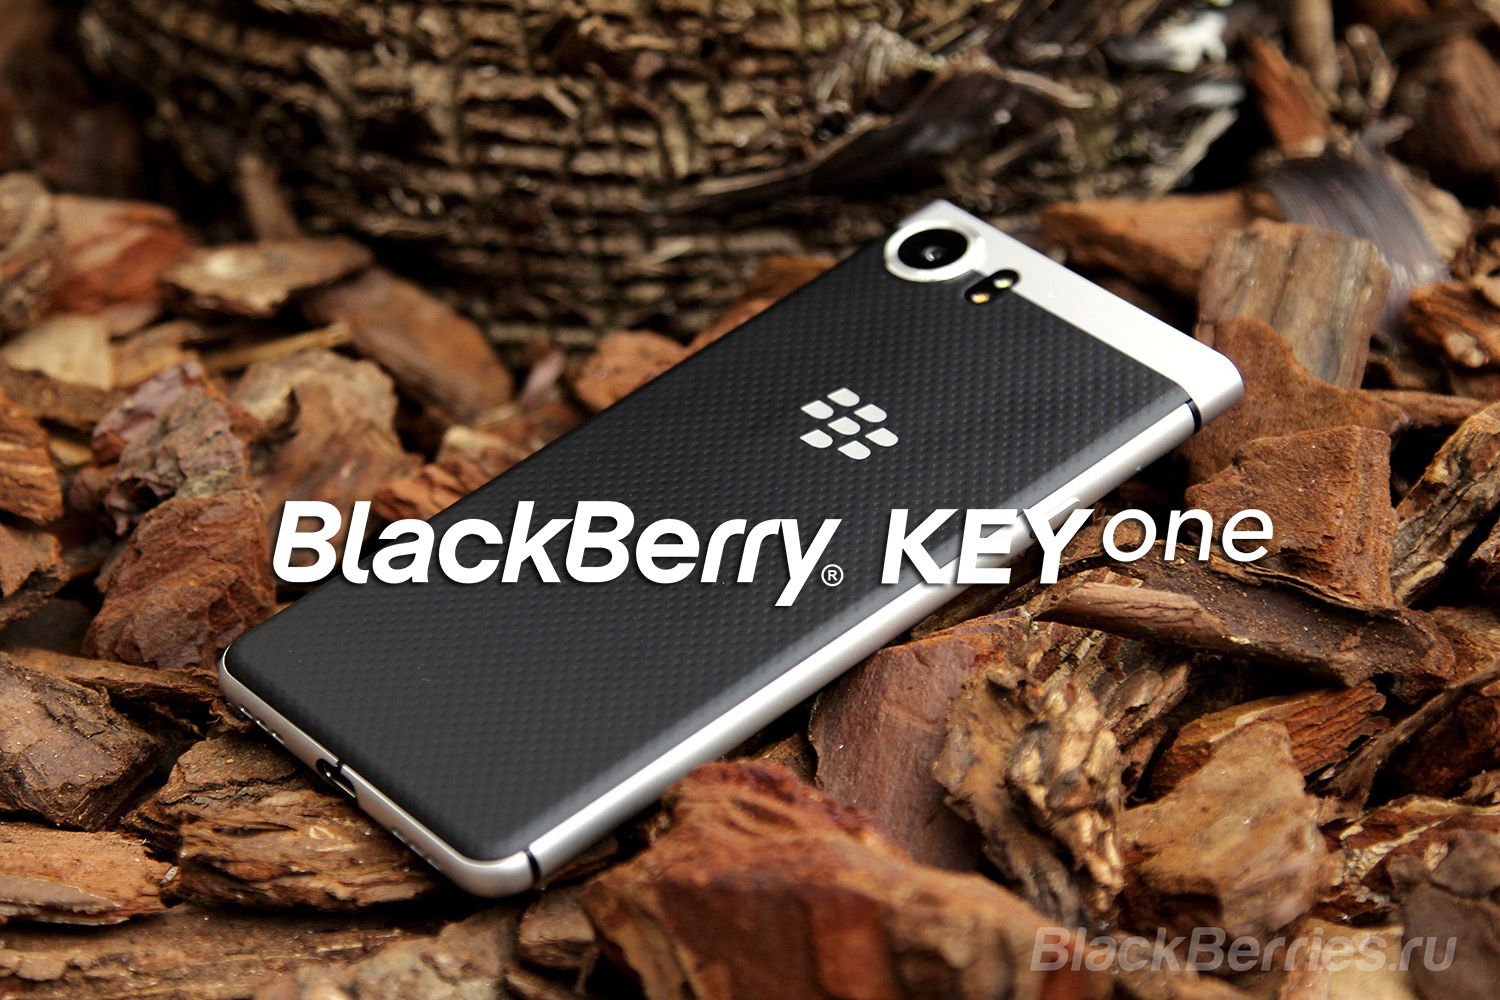 BlackBerry-Keyone-Shop-2